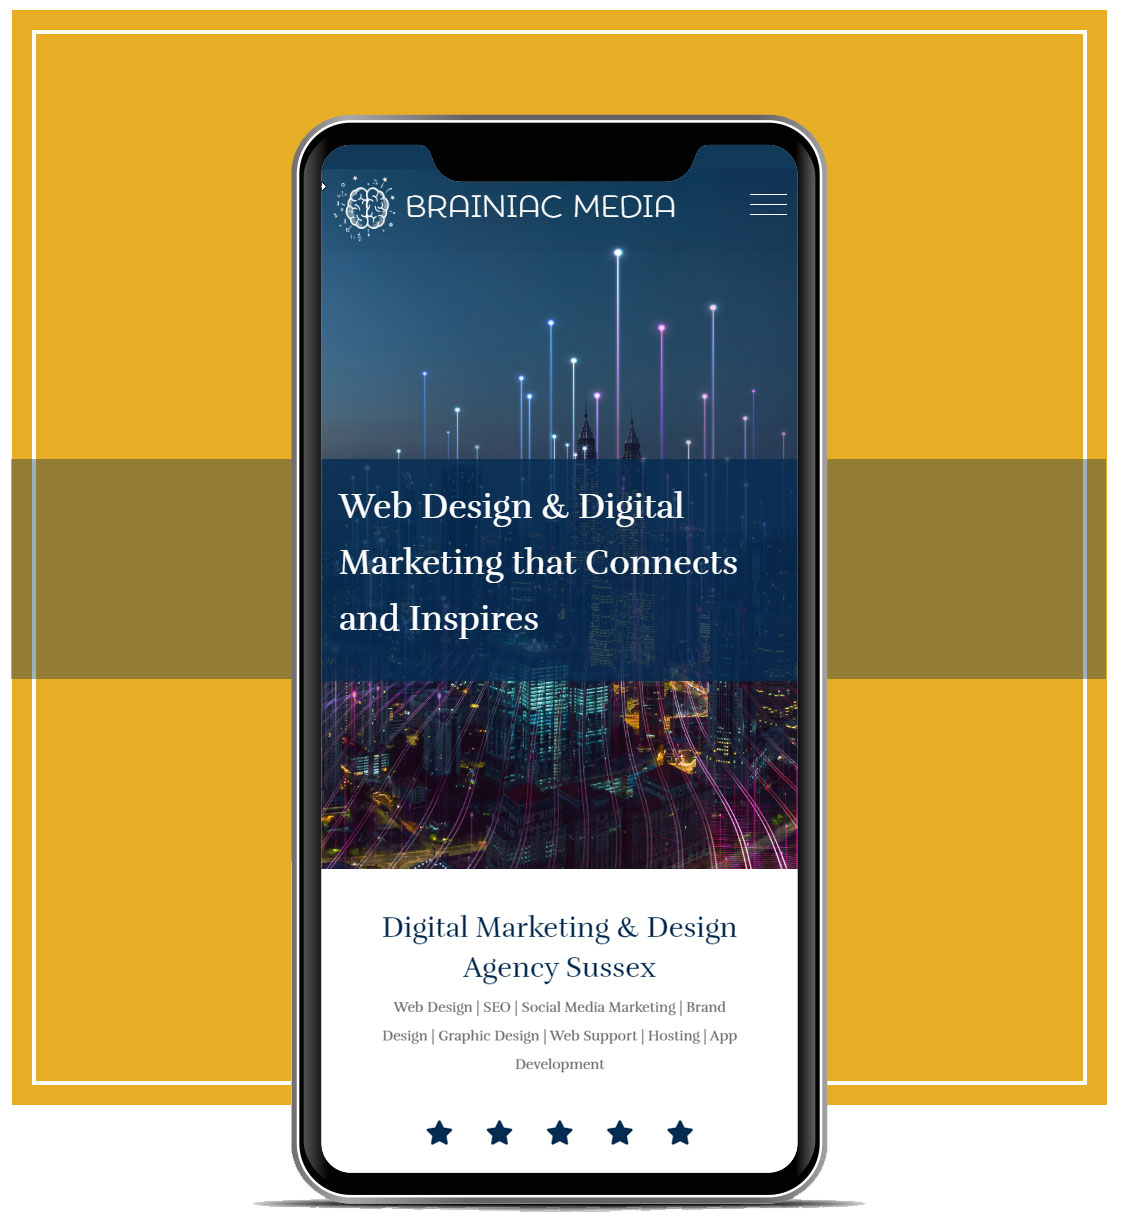 Contact us today for digital marketing